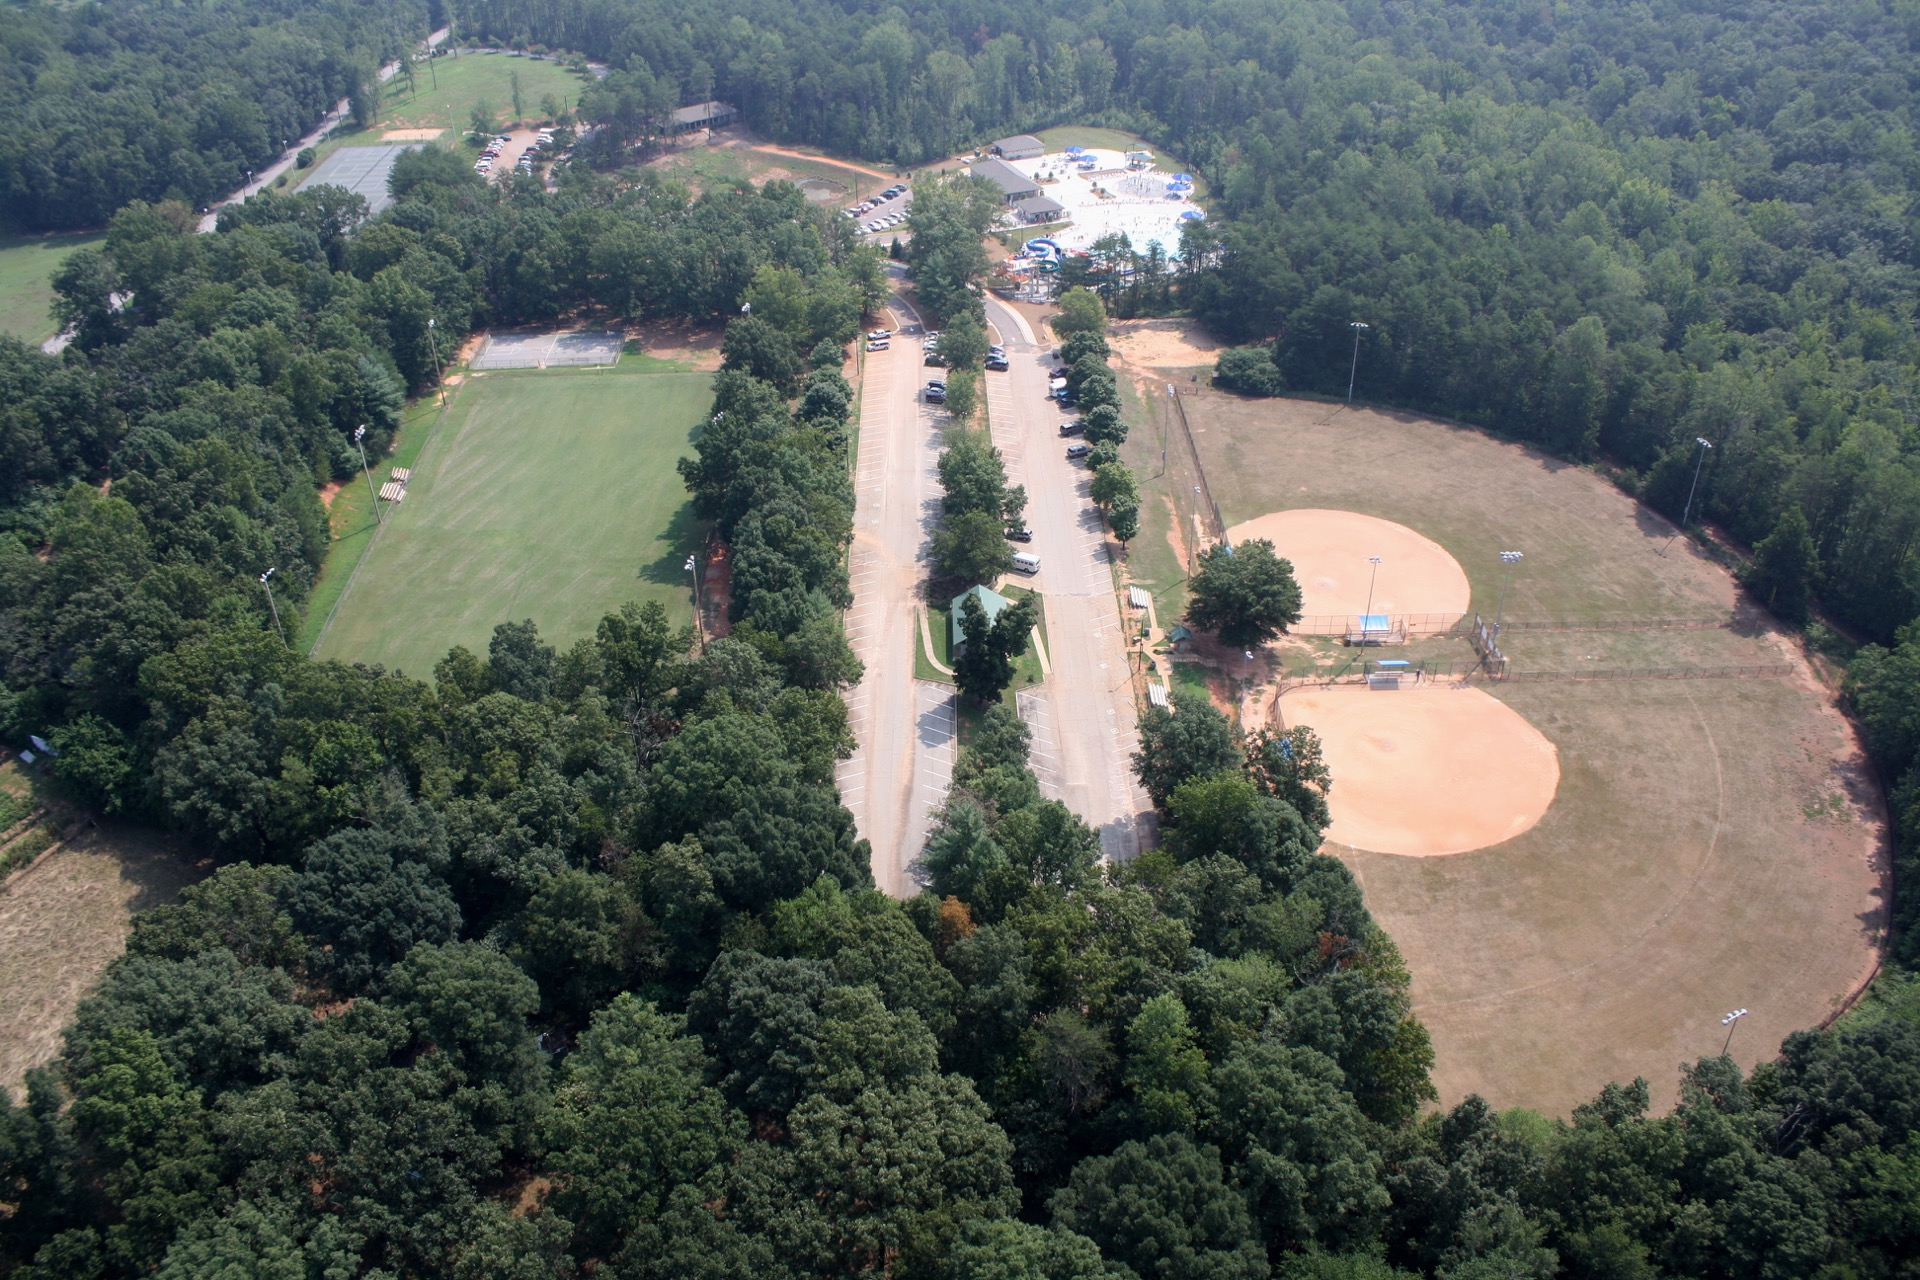 northside park aerial view